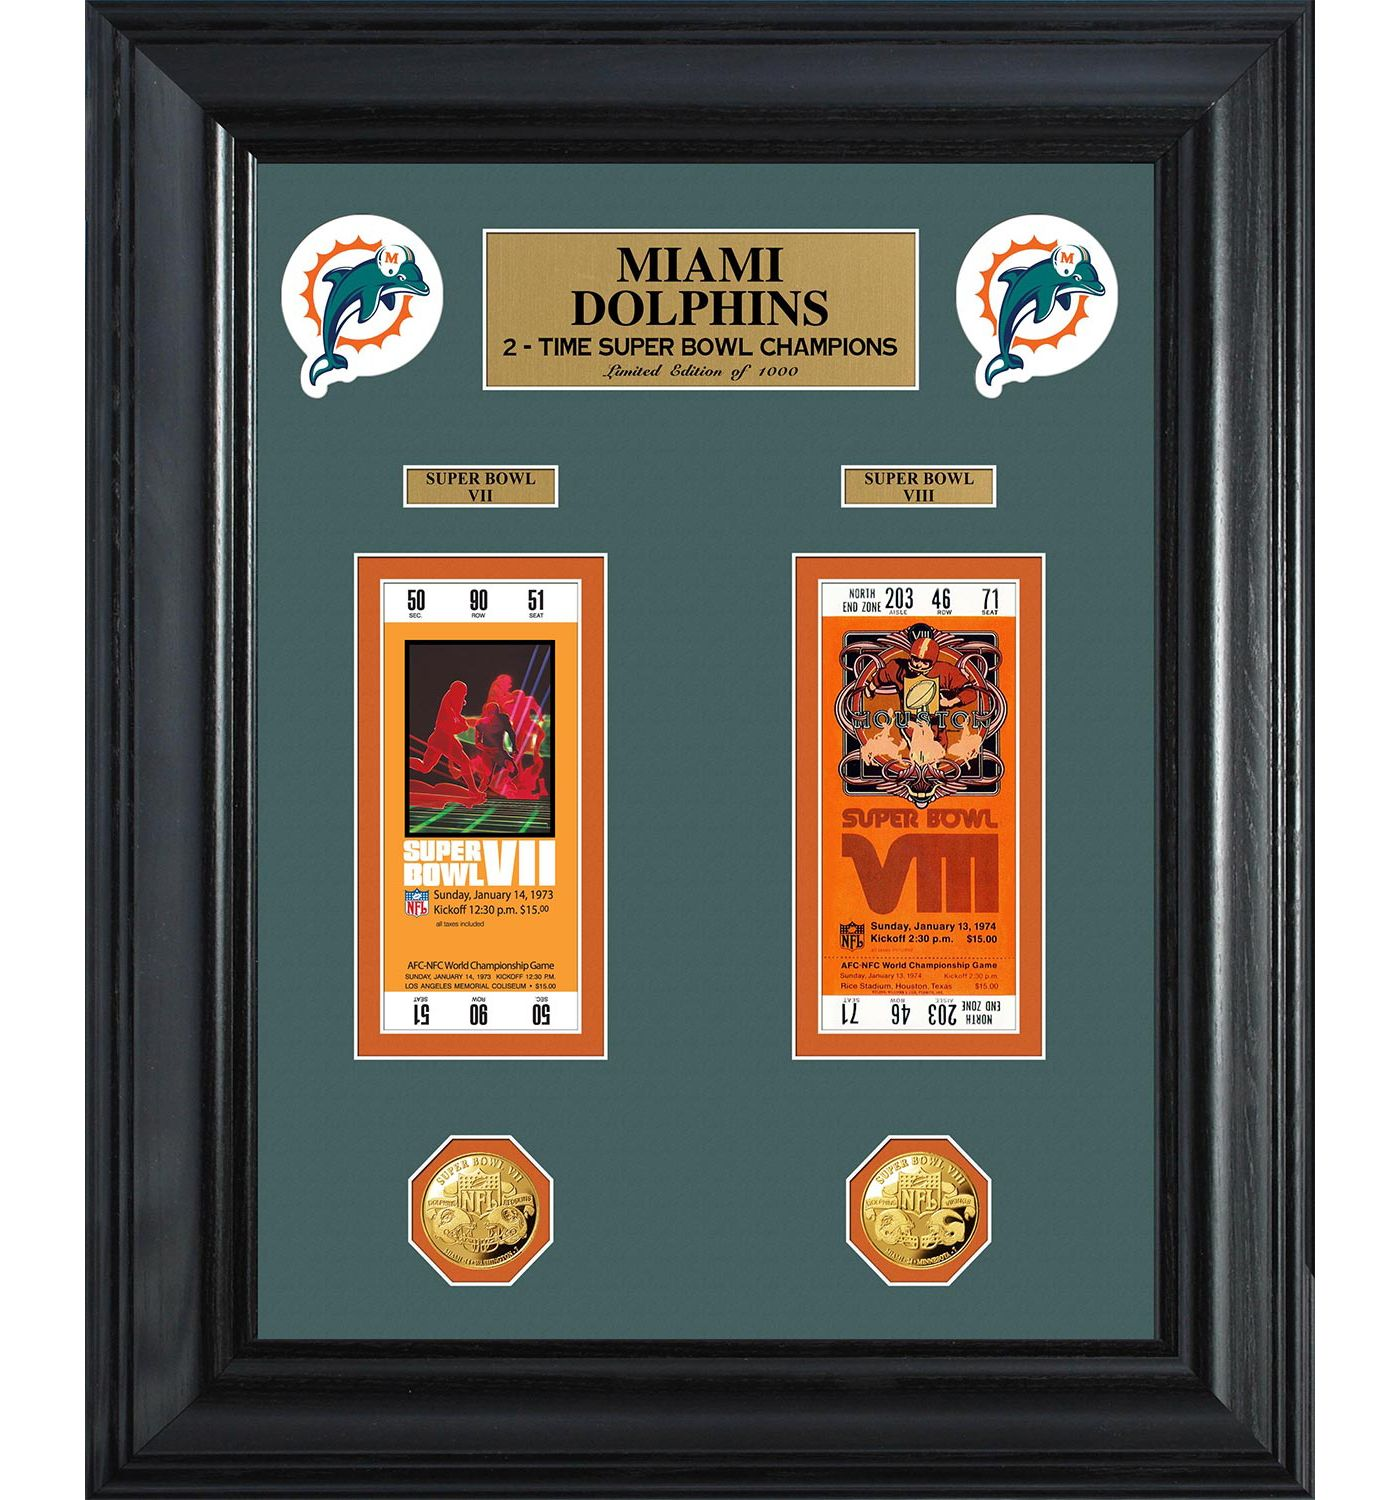 The Highland Mint Miami Dolphins Super Bowl Ticket and Coin Collection